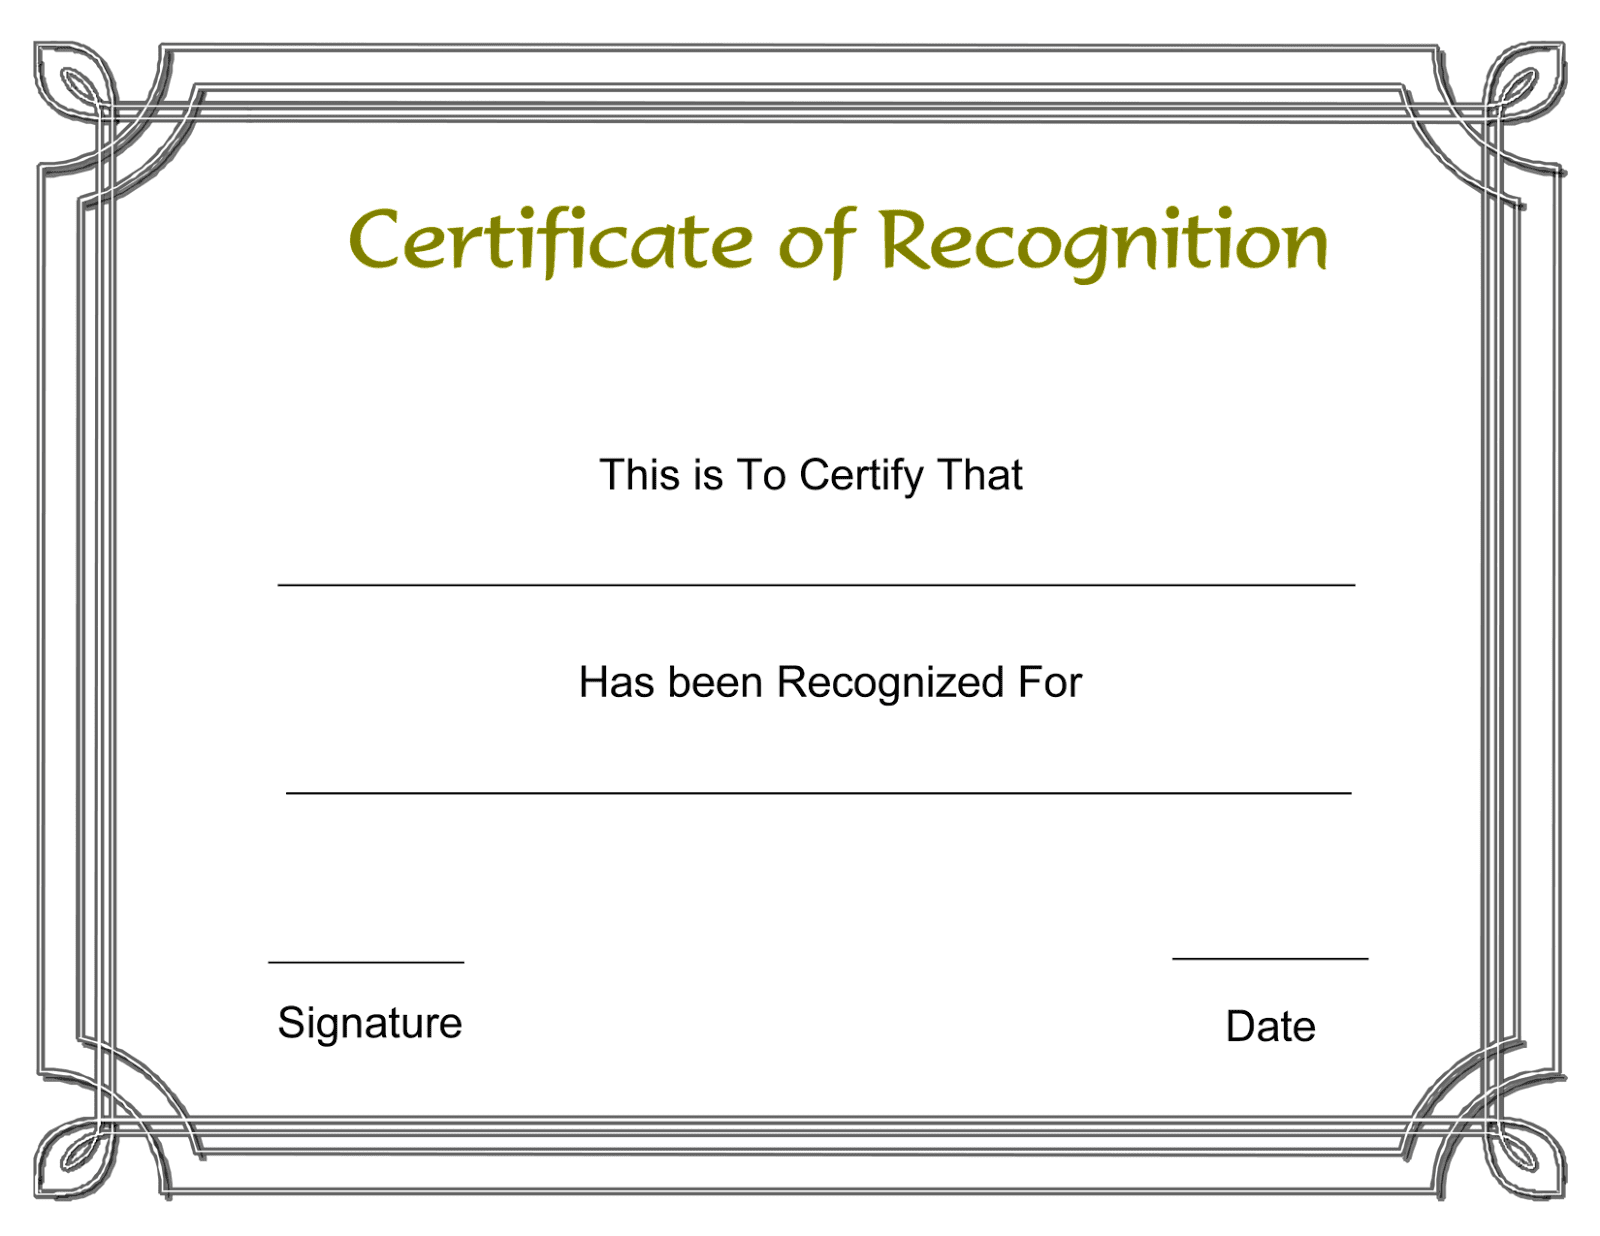 Certificate of recognition template microsoft word d templates certificate of recognition template microsoft word yelopaper Images